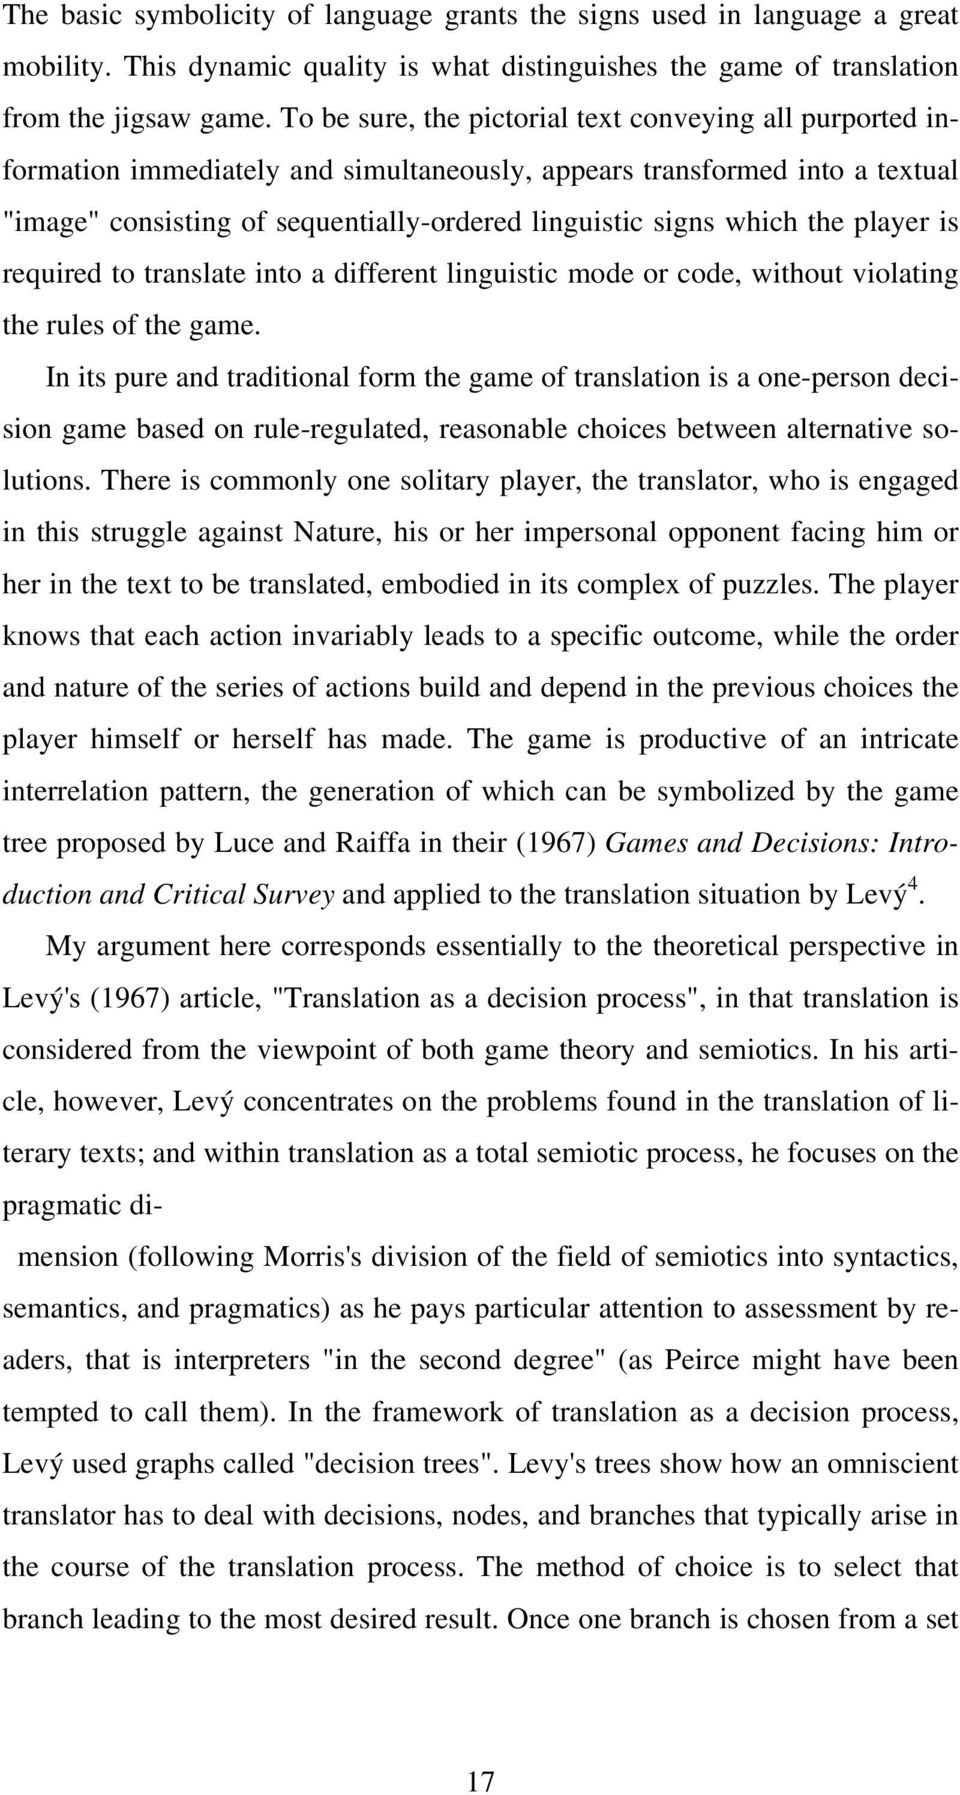 the player is required to translate into a different linguistic mode or code, without violating the rules of the game.